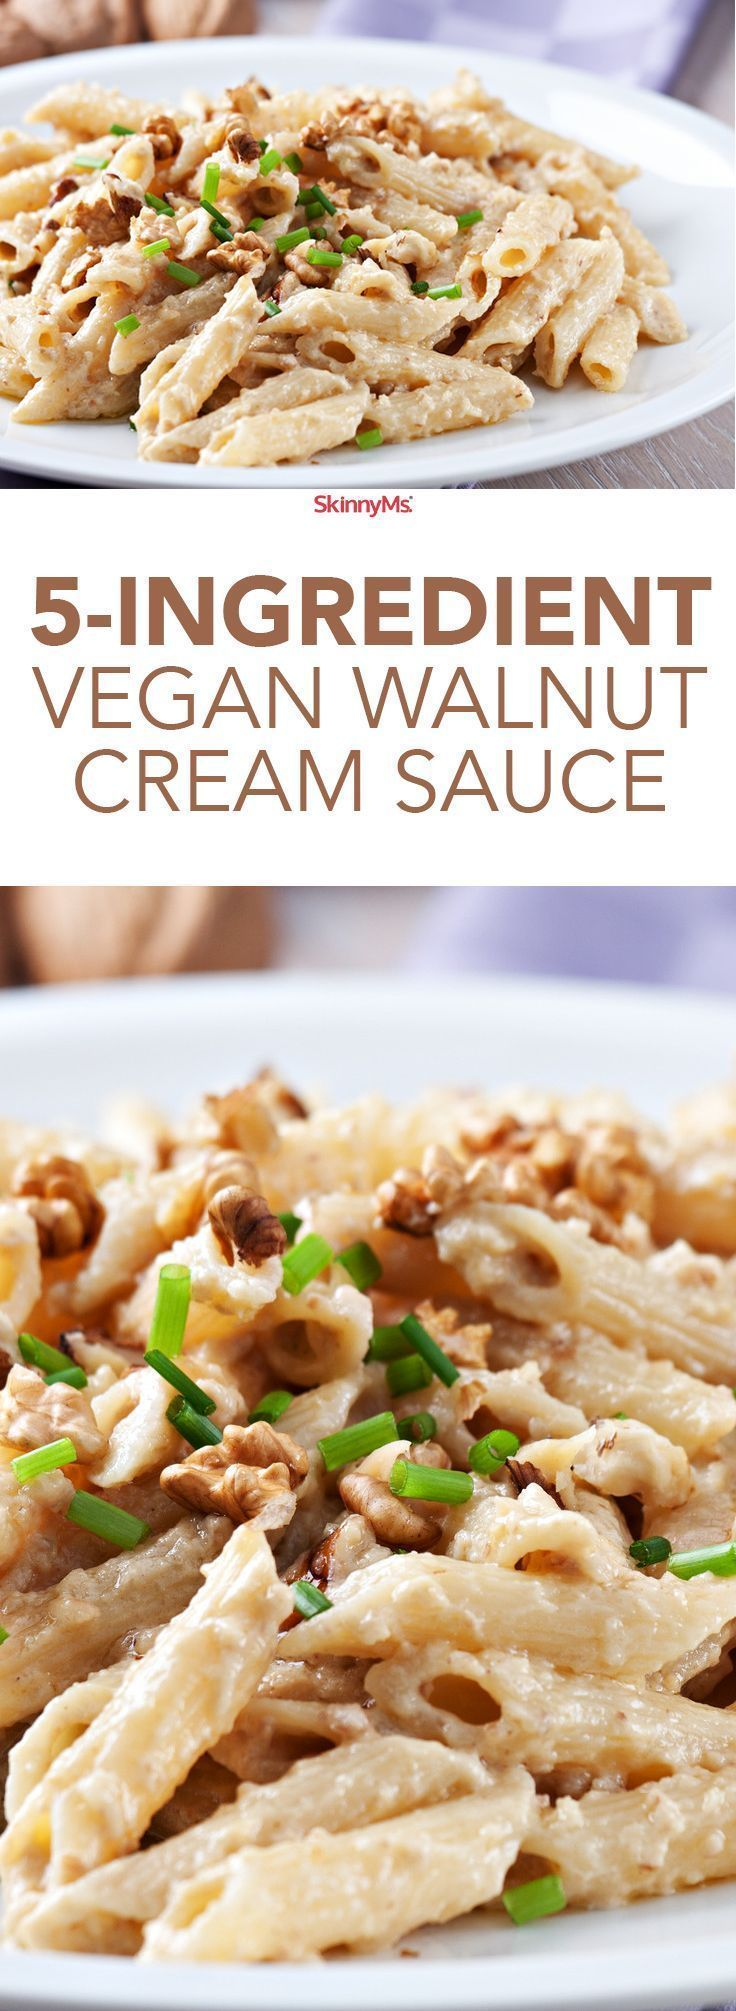 5-Ingredient Walnut Cream Sauce: Only 5 Ingredients, 2g carbs, SmartPoints: 2, and tons of flavor! #skinnyms #cleaneating